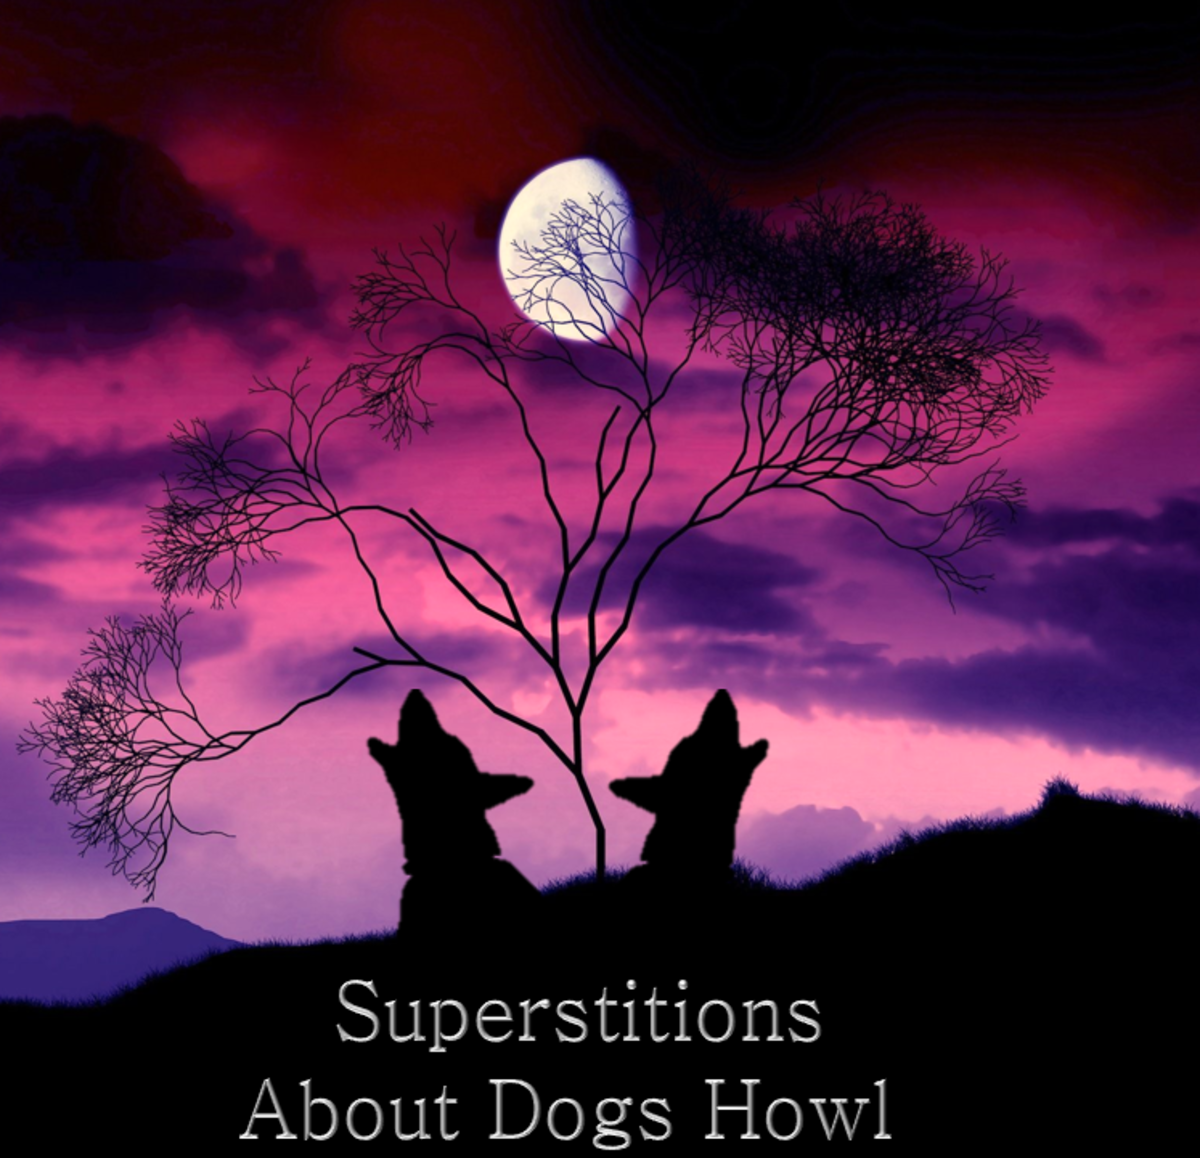 Superstitions About Dogs Howl